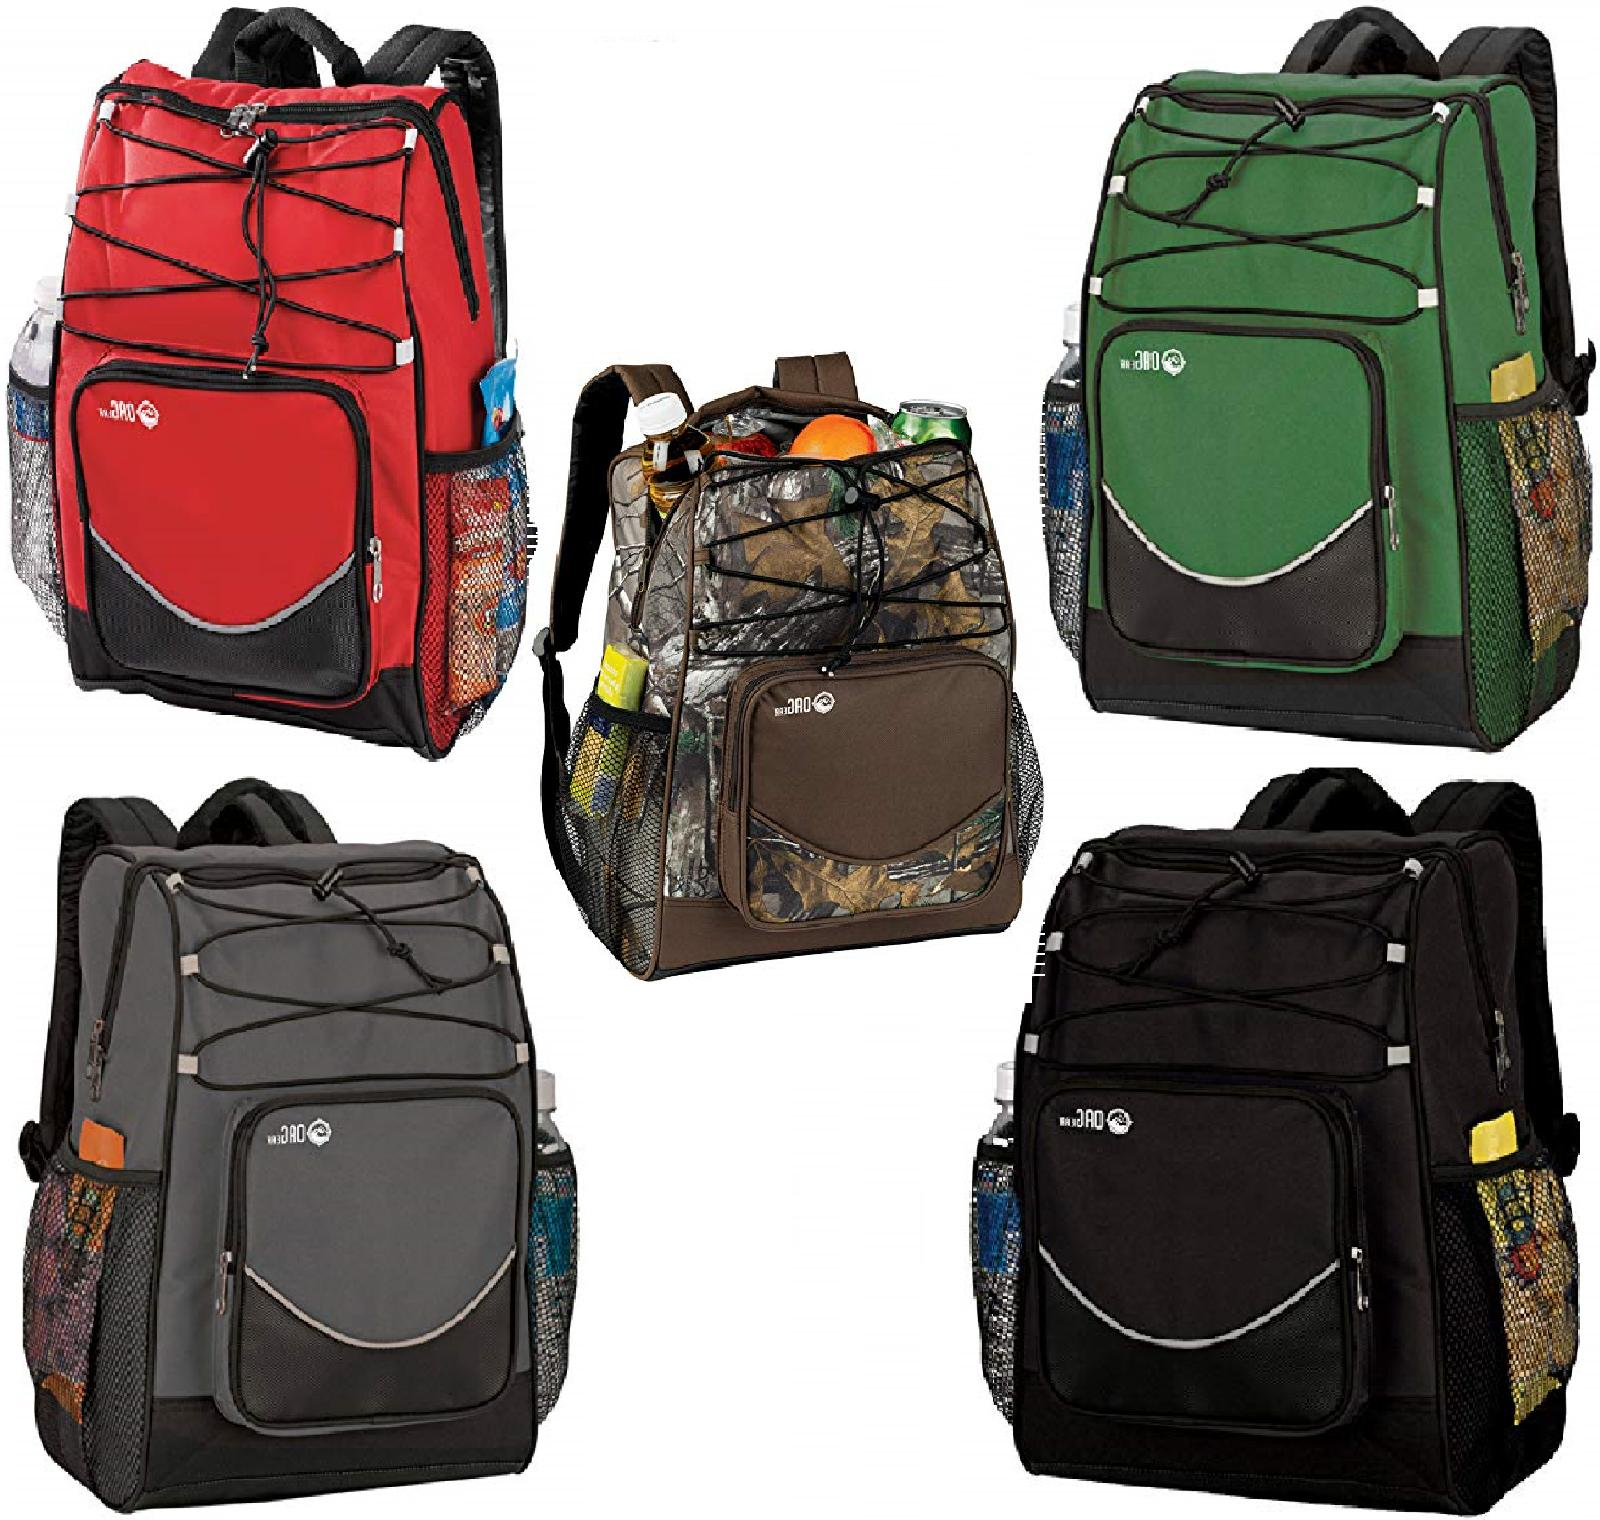 backpack 20 can cooler bag outdoor camping